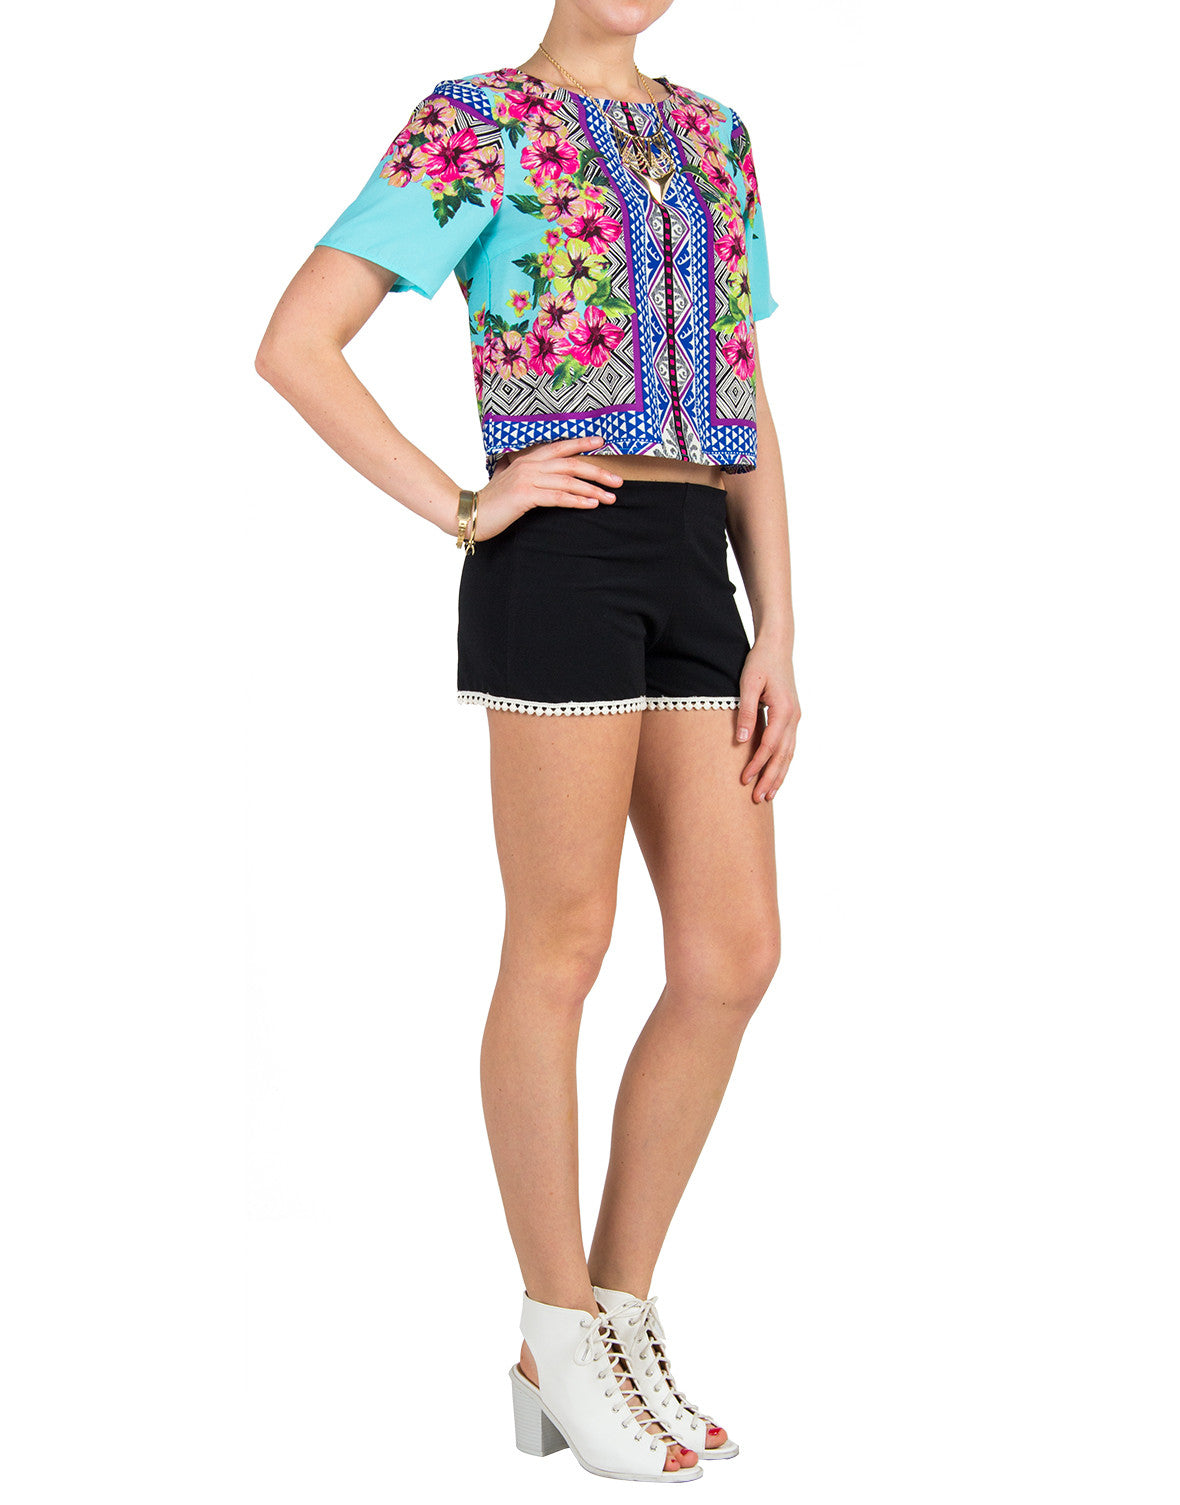 Tropical Boxy Tee